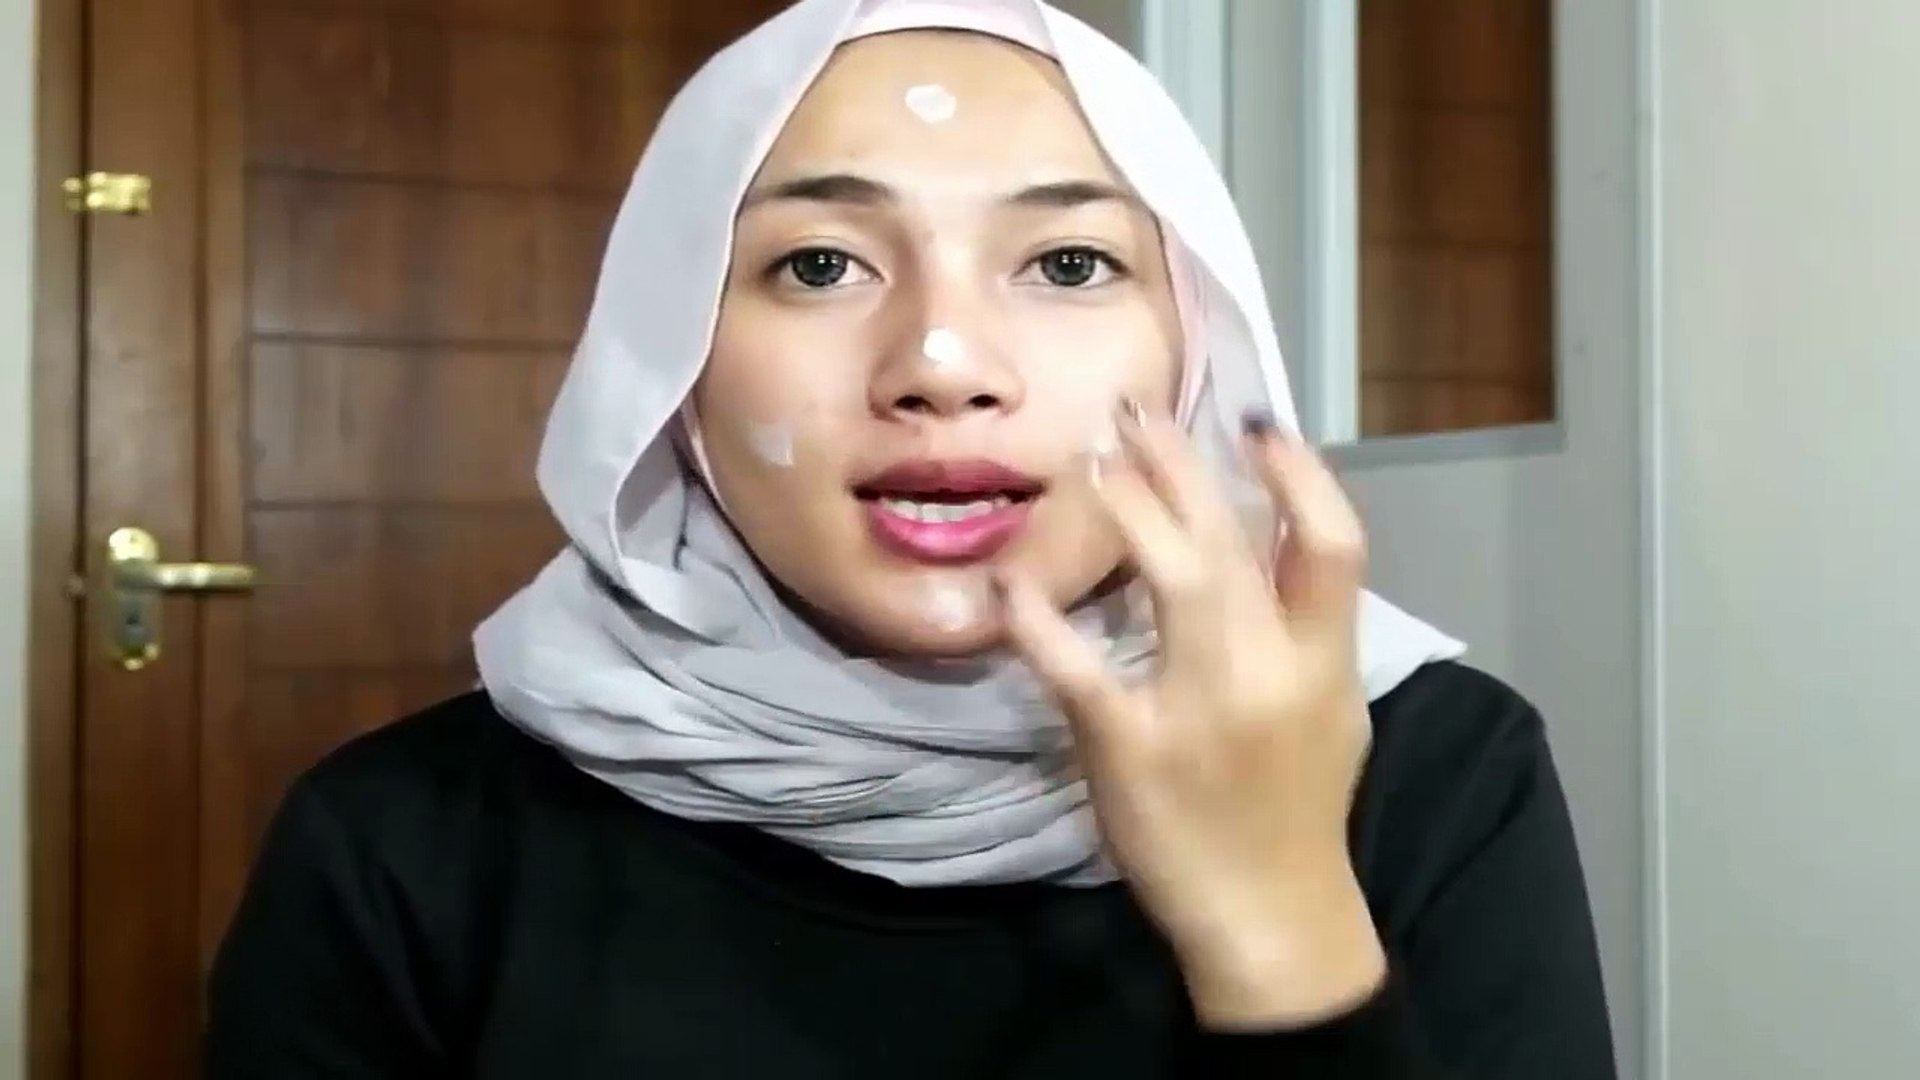 Easy Eyes n' Face Makeup Tutorial and Eid Makeup Face wash